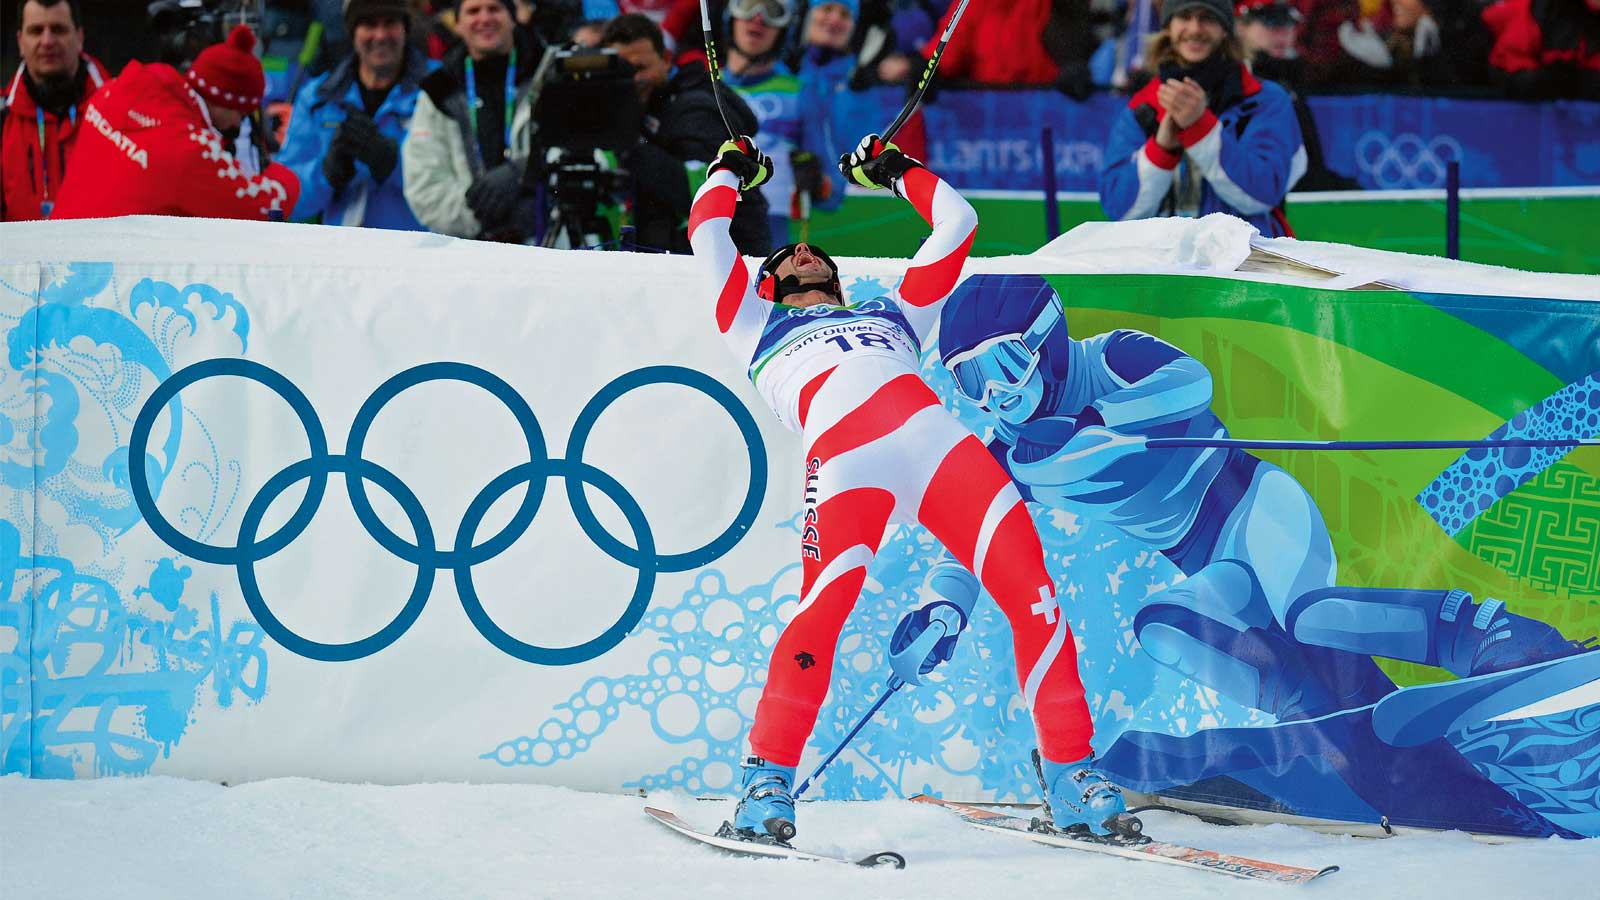 imgpreview_tvcolympic_large_15